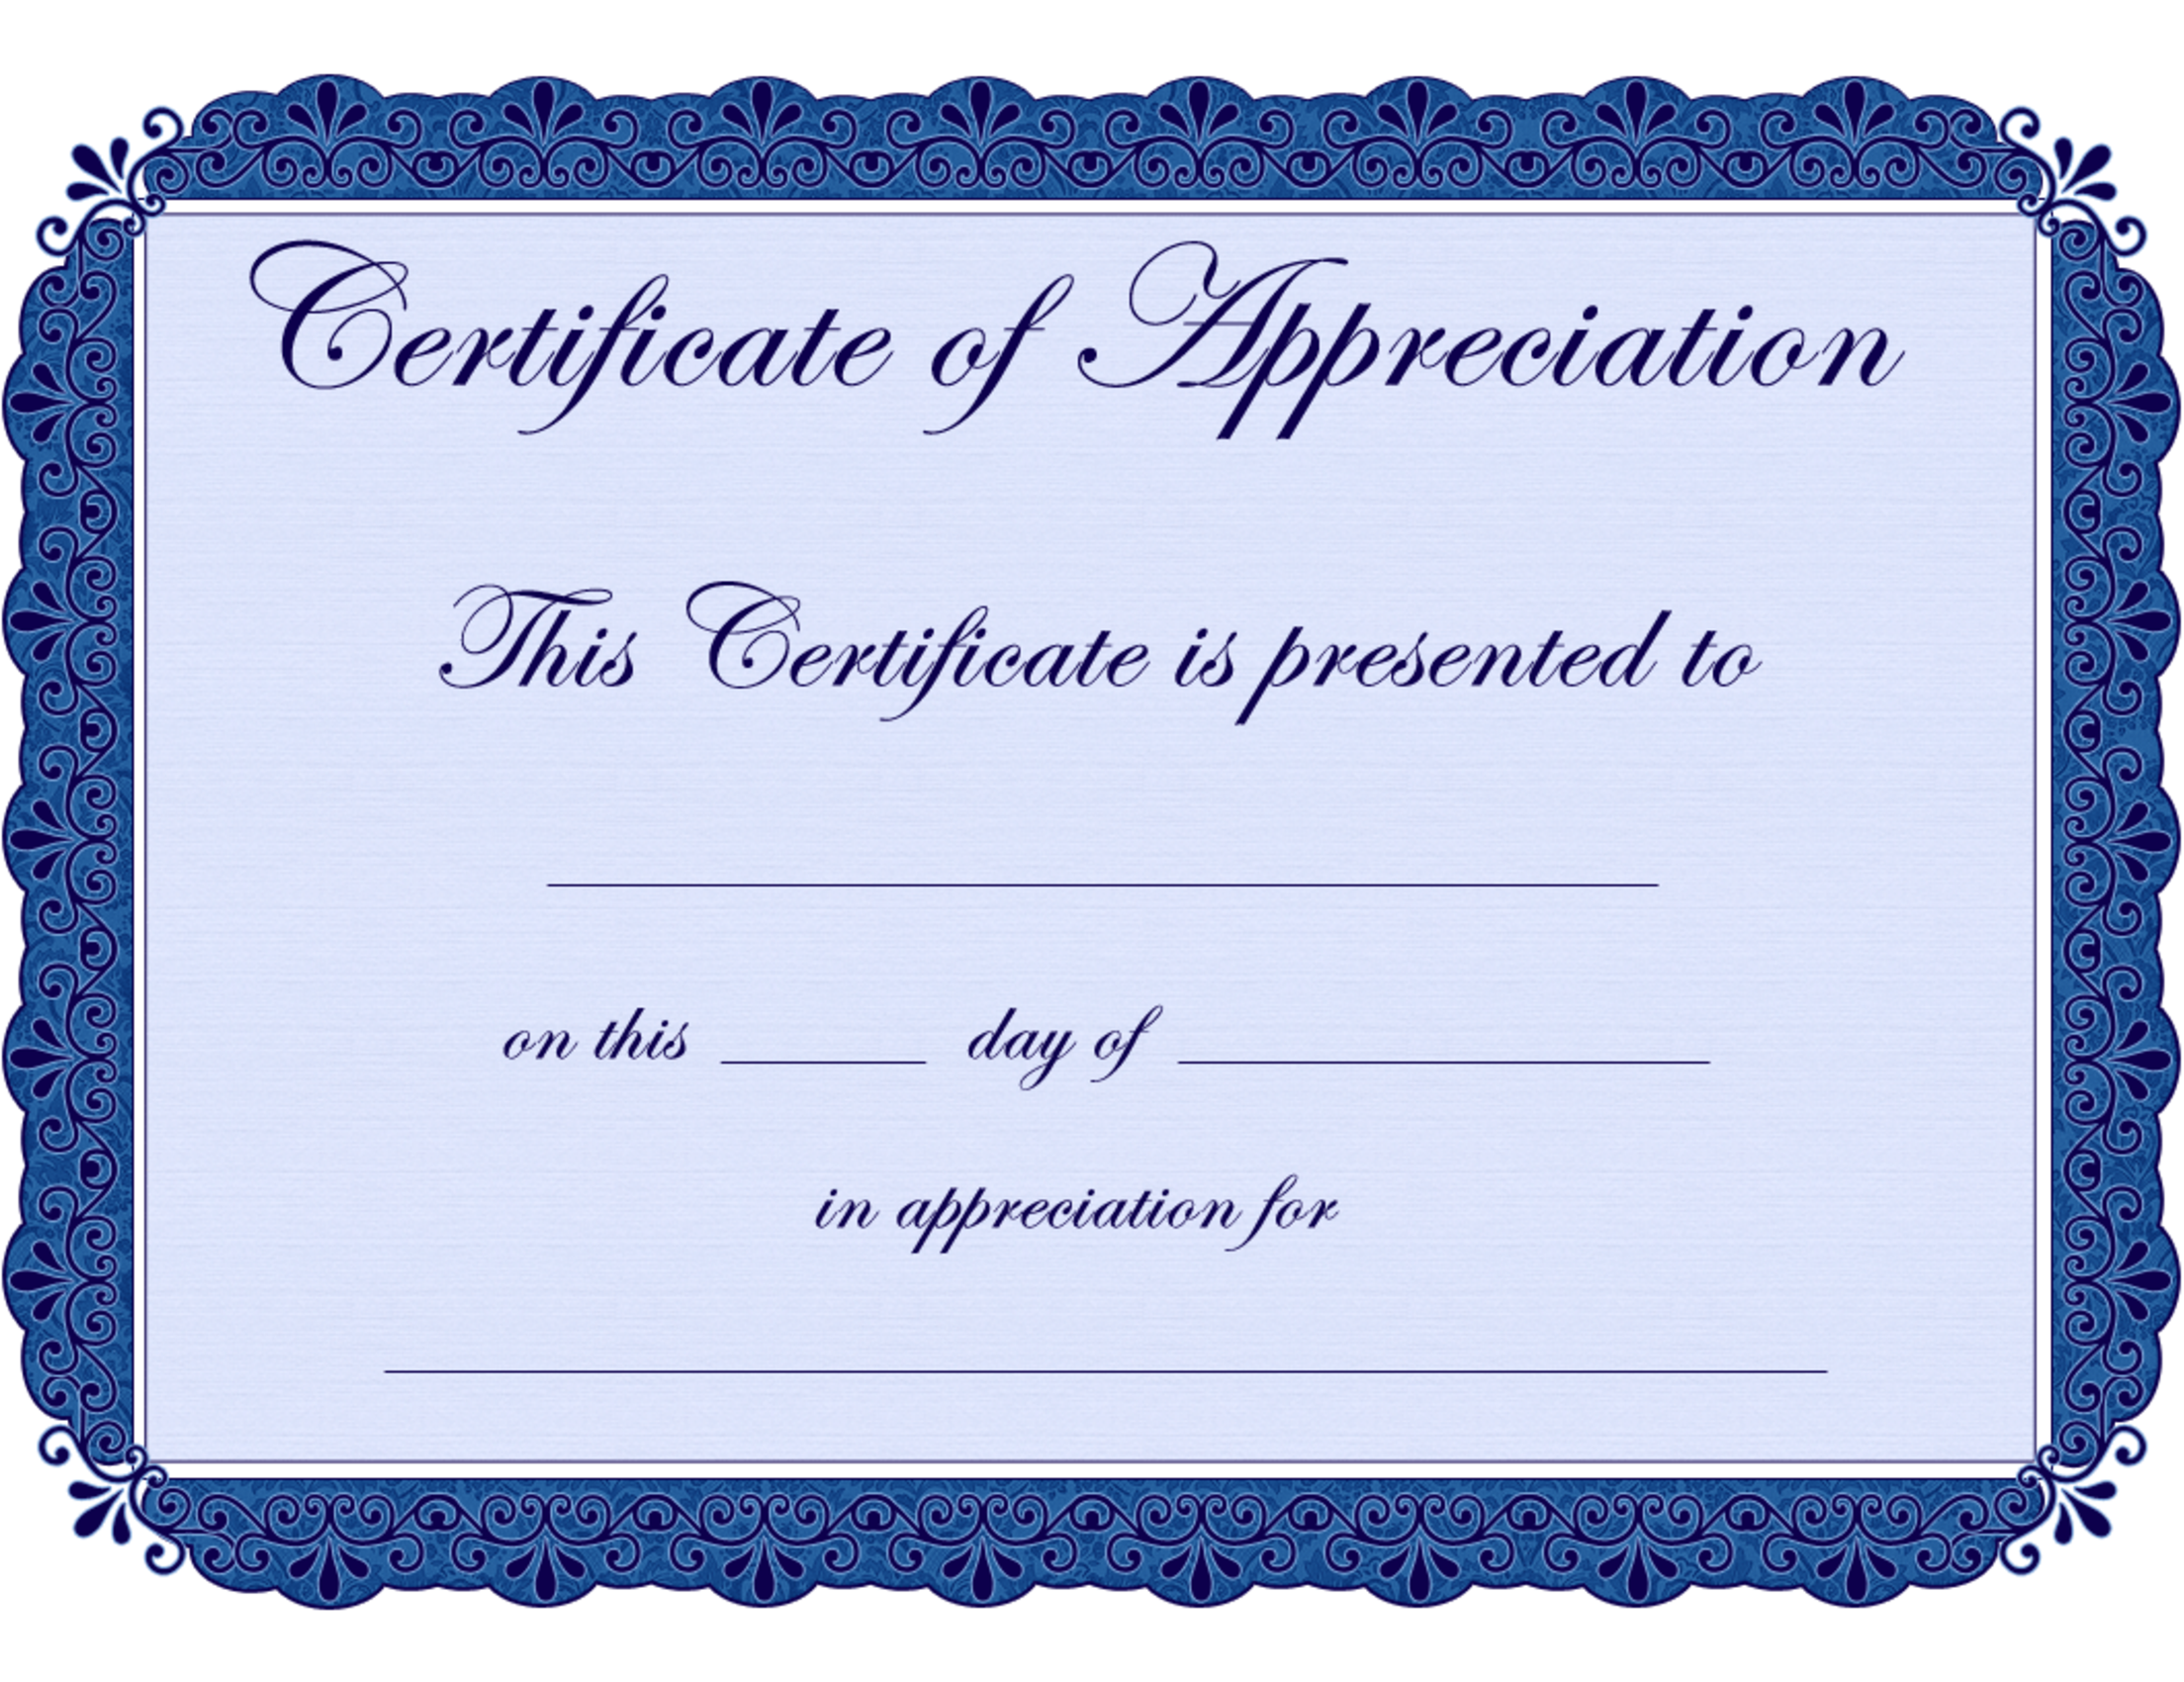 Certificate Of Appreciation | Pinterest | Free Printable Certificates,  Printable Certu2026  Free Customizable Printable Certificates Of Achievement